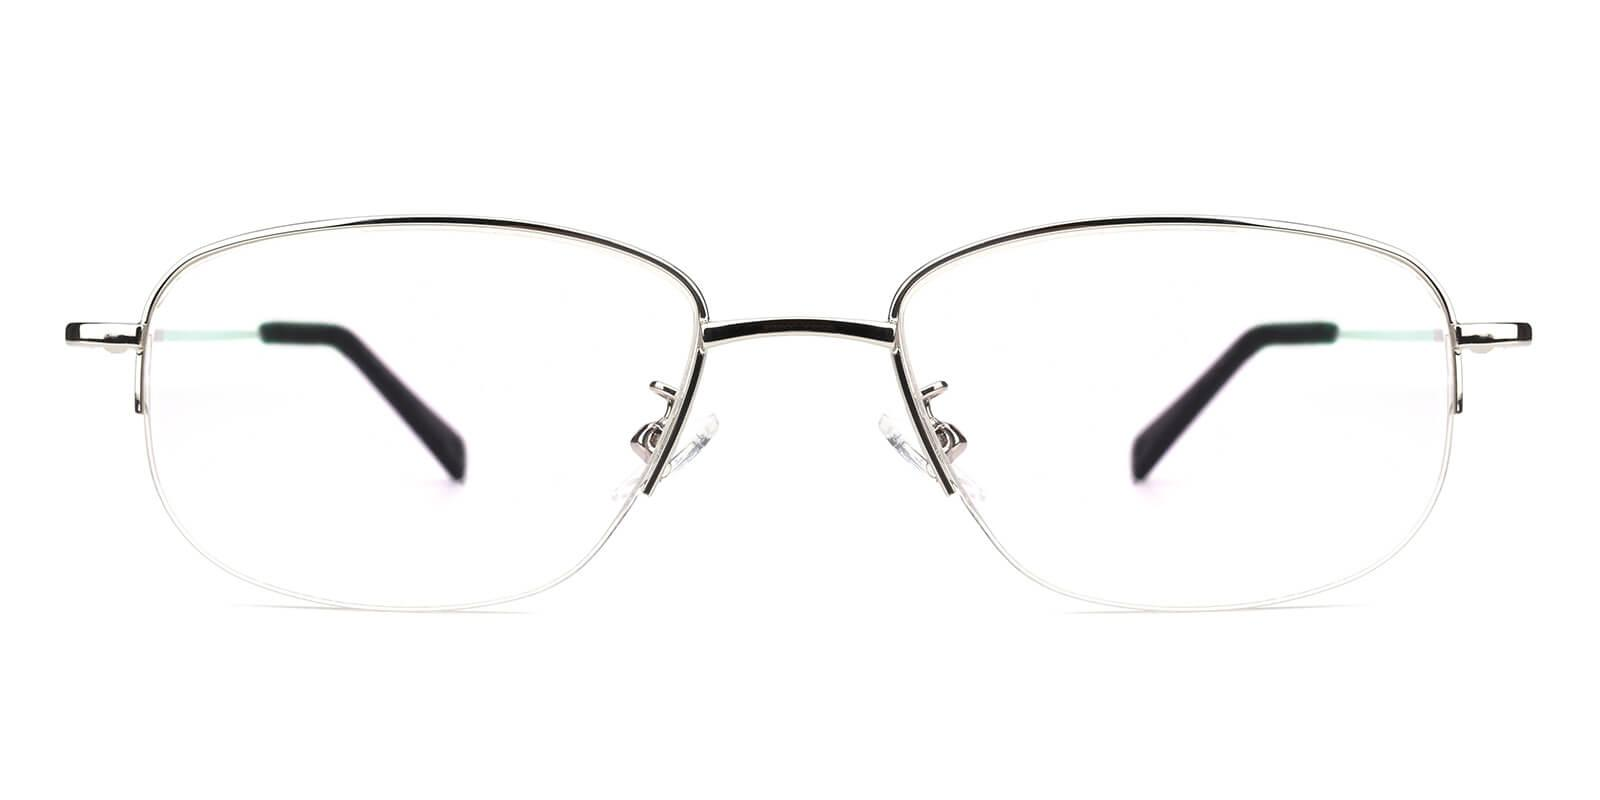 Recial-Silver-Square-Metal-Eyeglasses-additional2